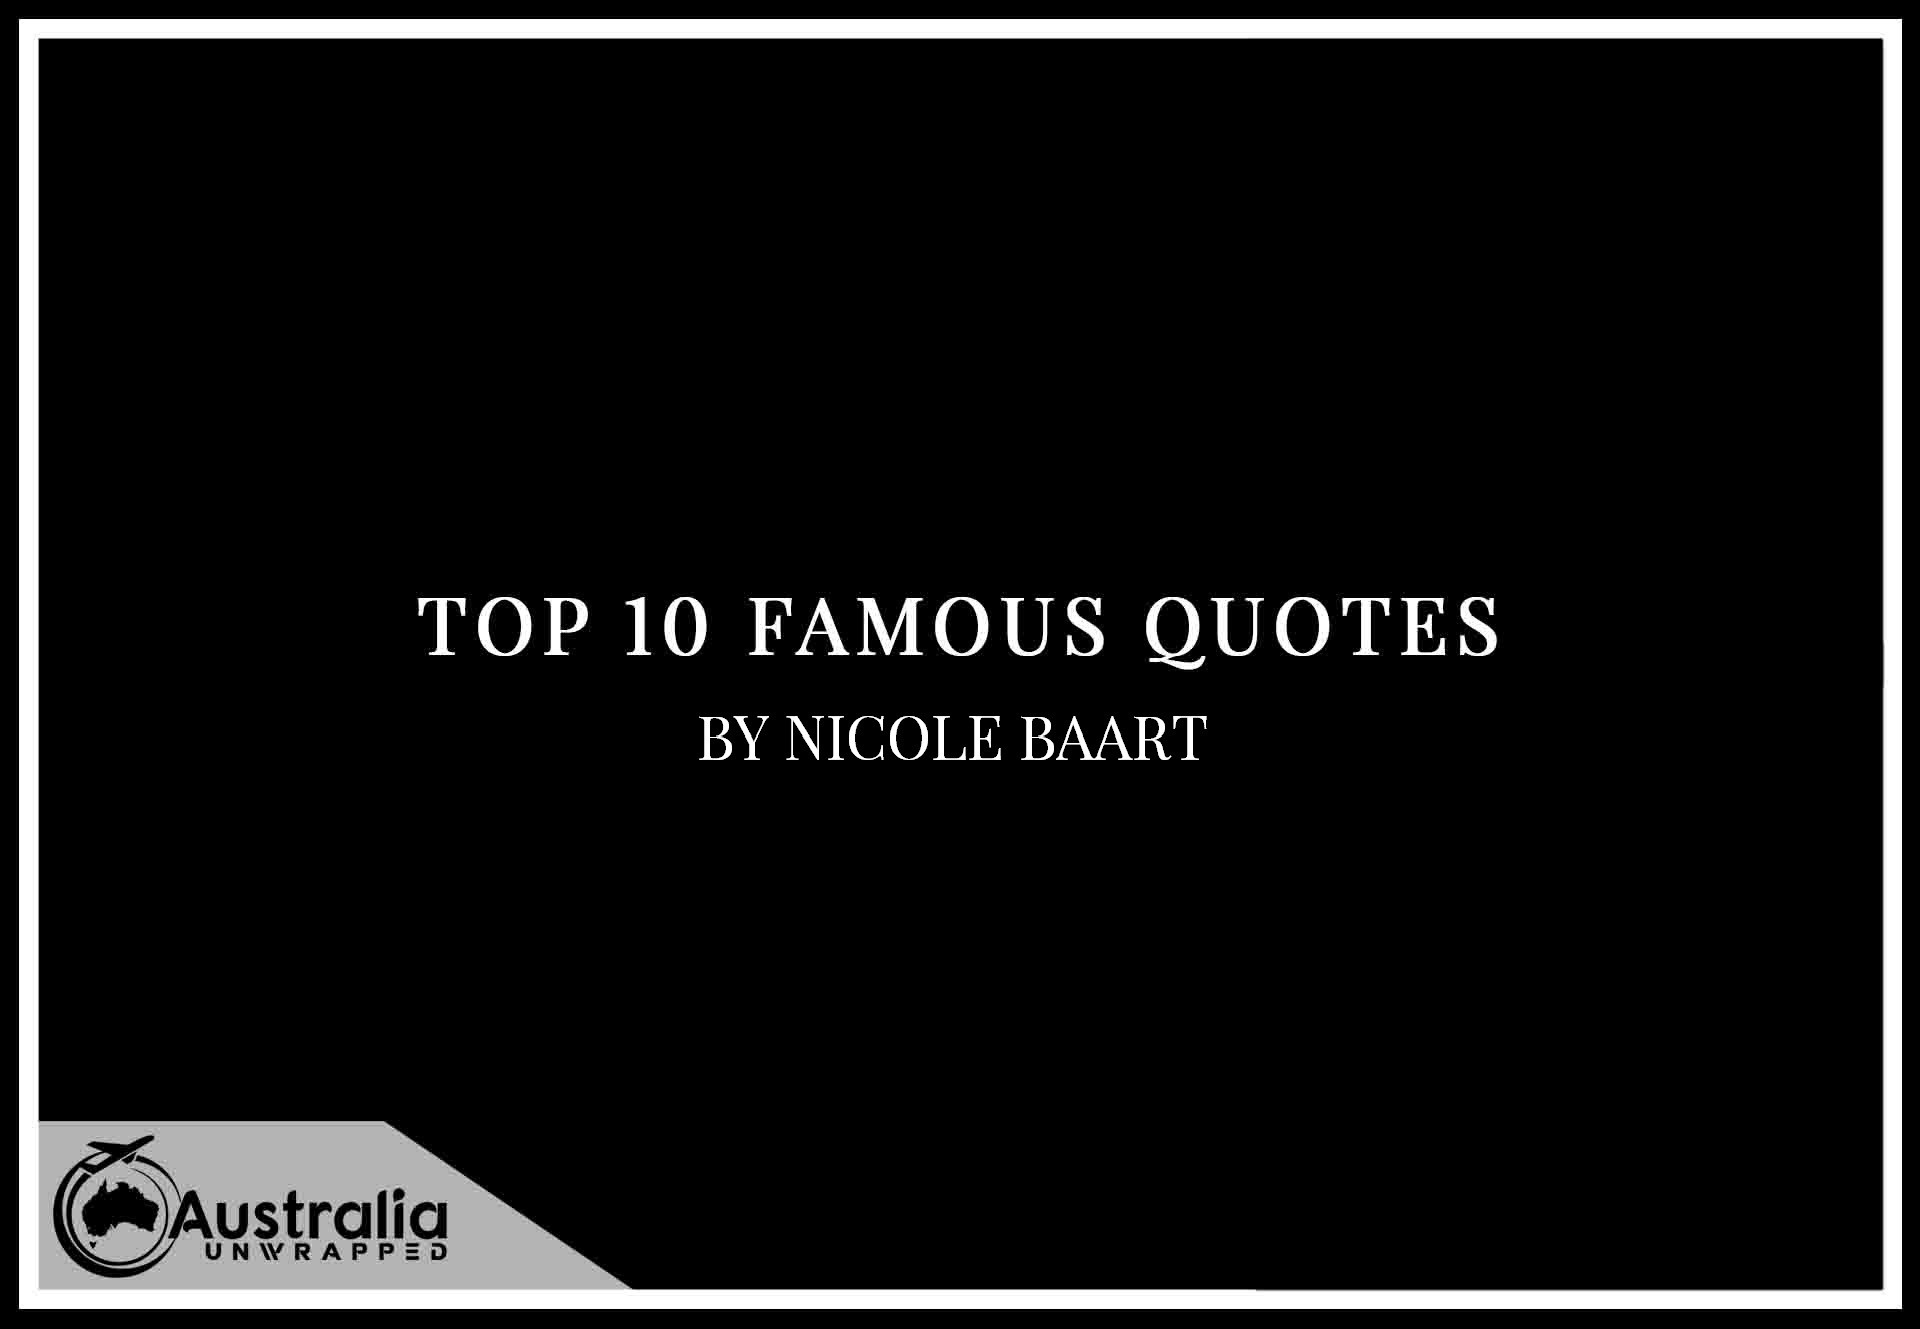 Top 10 Famous Quotes by Author Nicole Baart